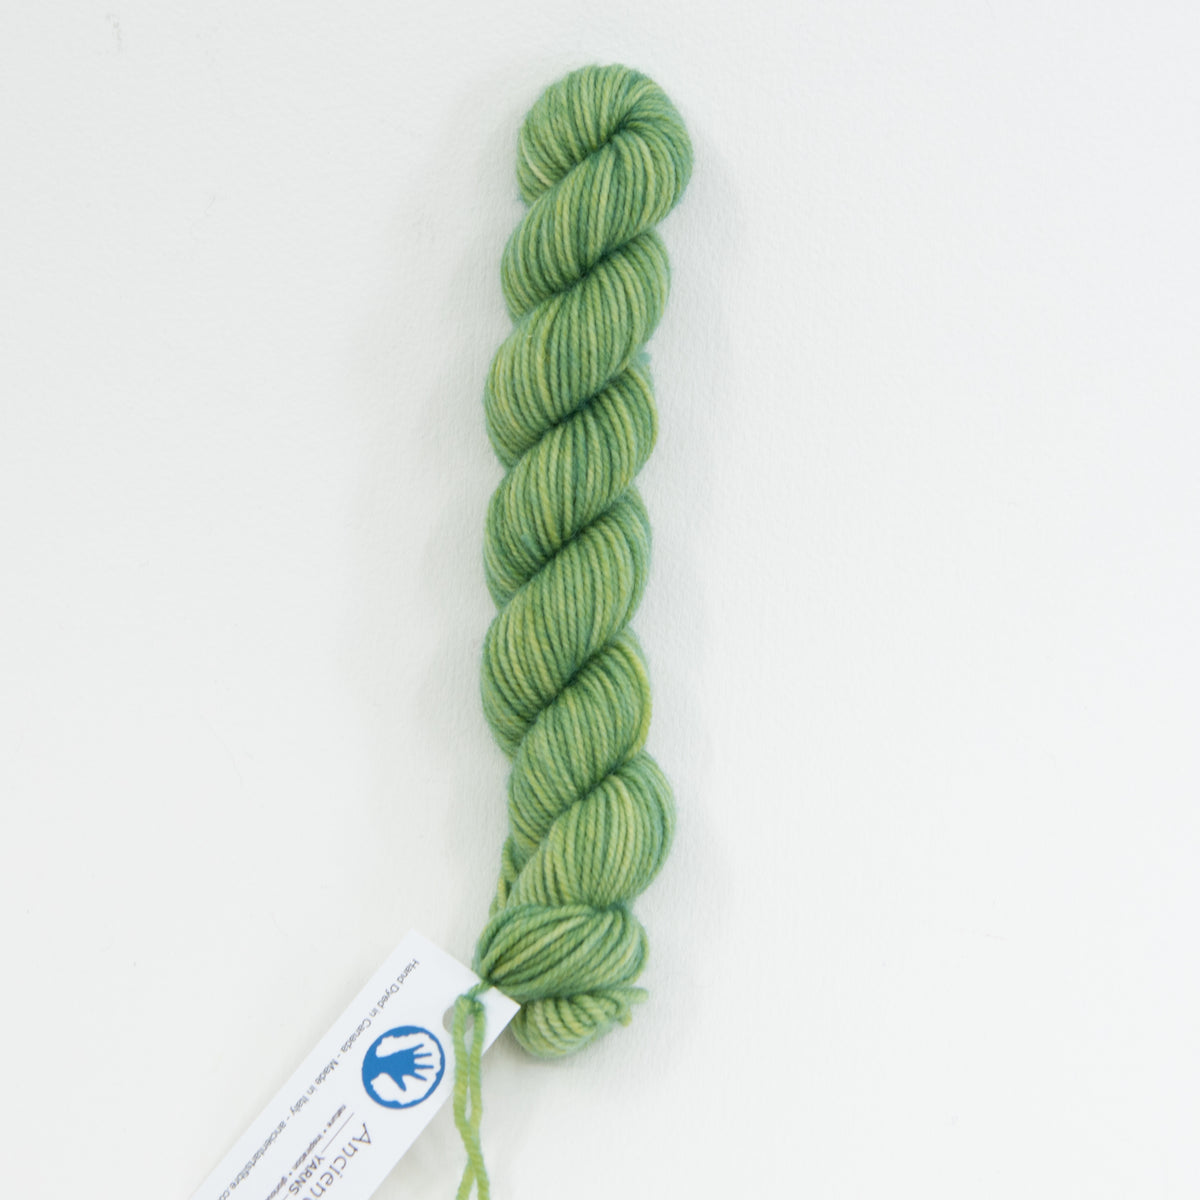 Dune Grass - Socknado Mini Twister 20 Gram - Dyed Stock